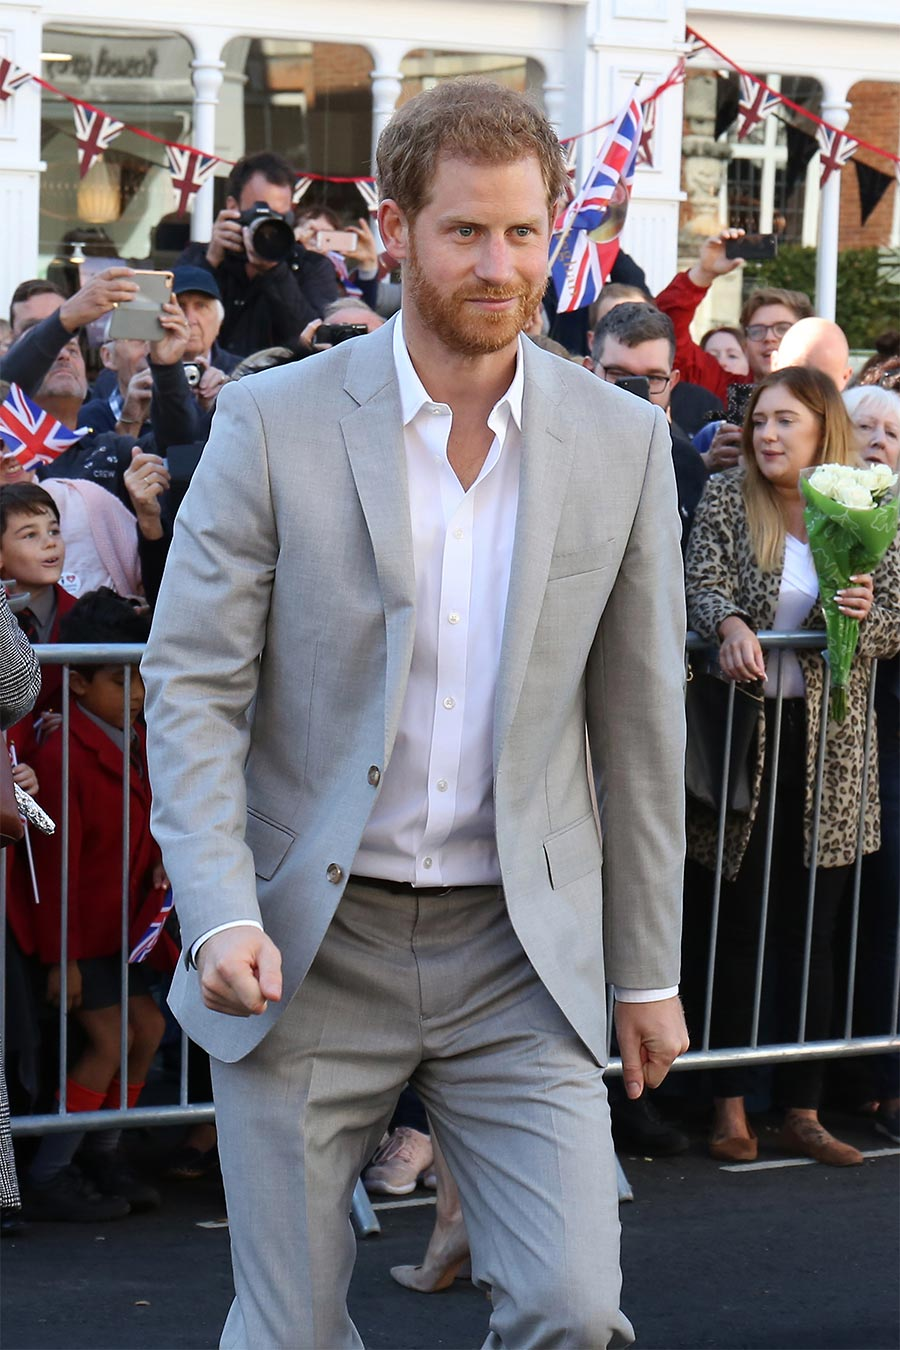 Prince HarryStyles - No Mexit Will Ever Change grey suit (2)